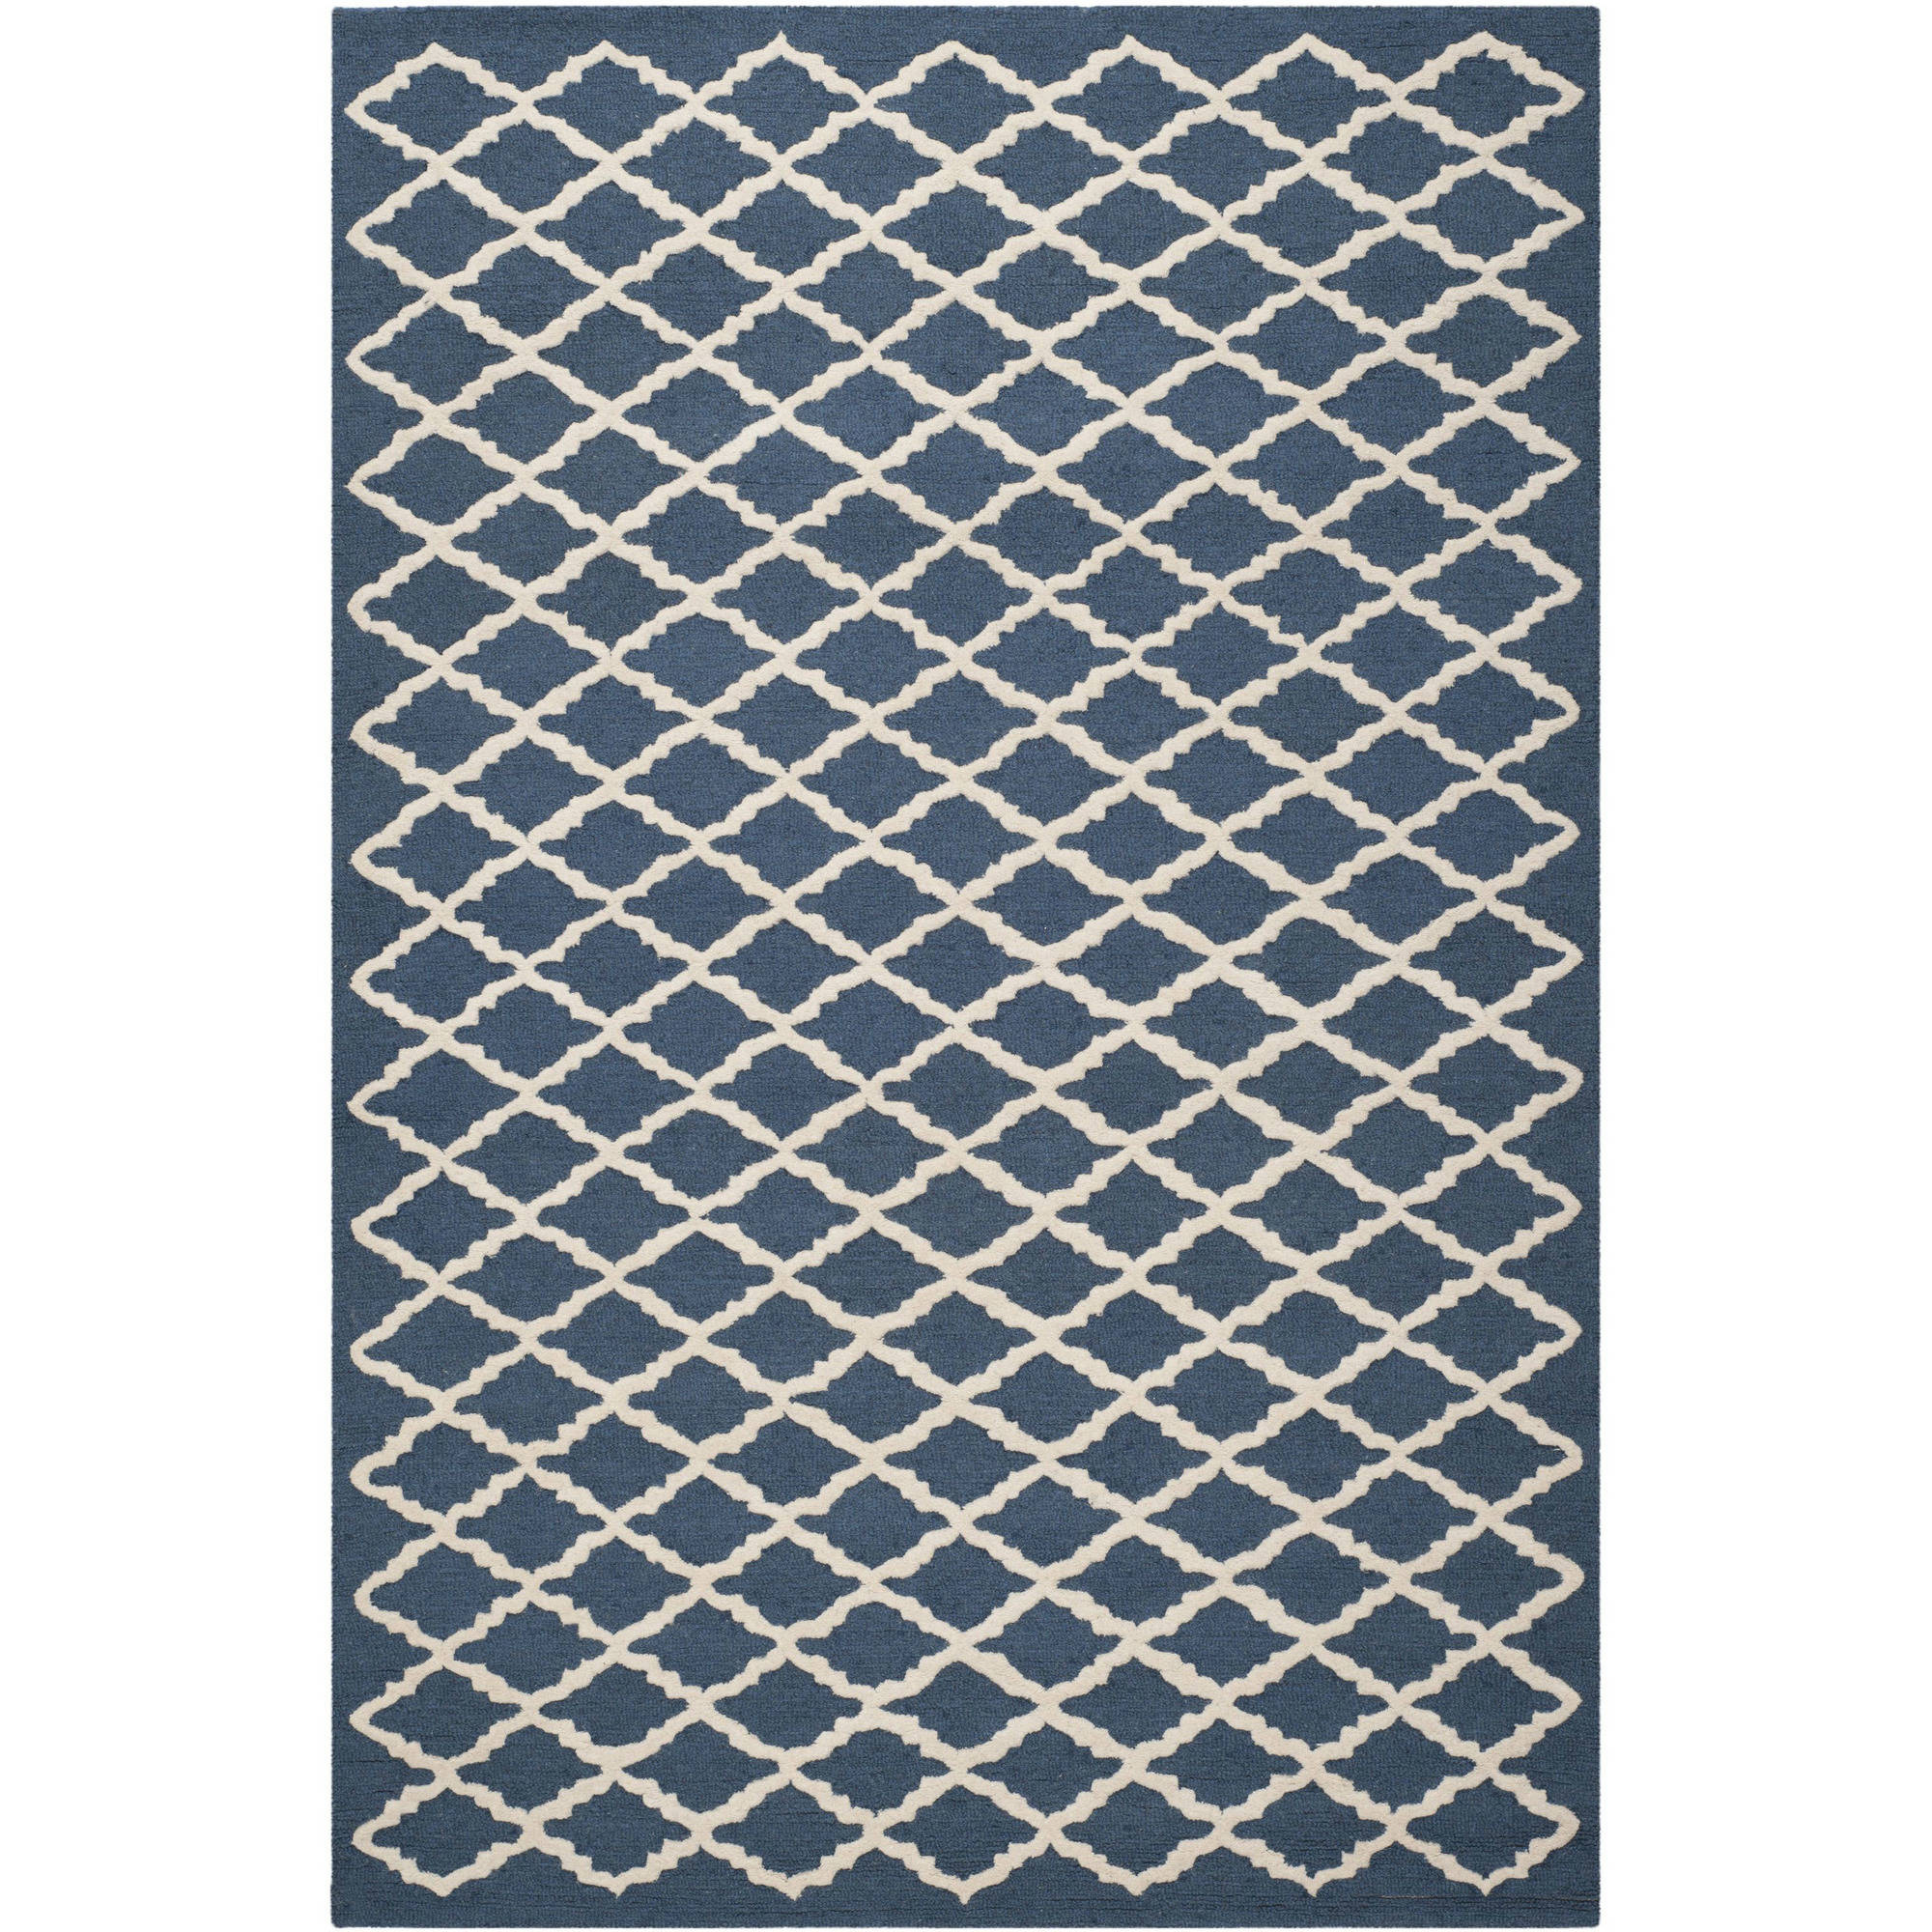 Safavieh Cambridge Karen Hand-Tufted Wool Area Rug